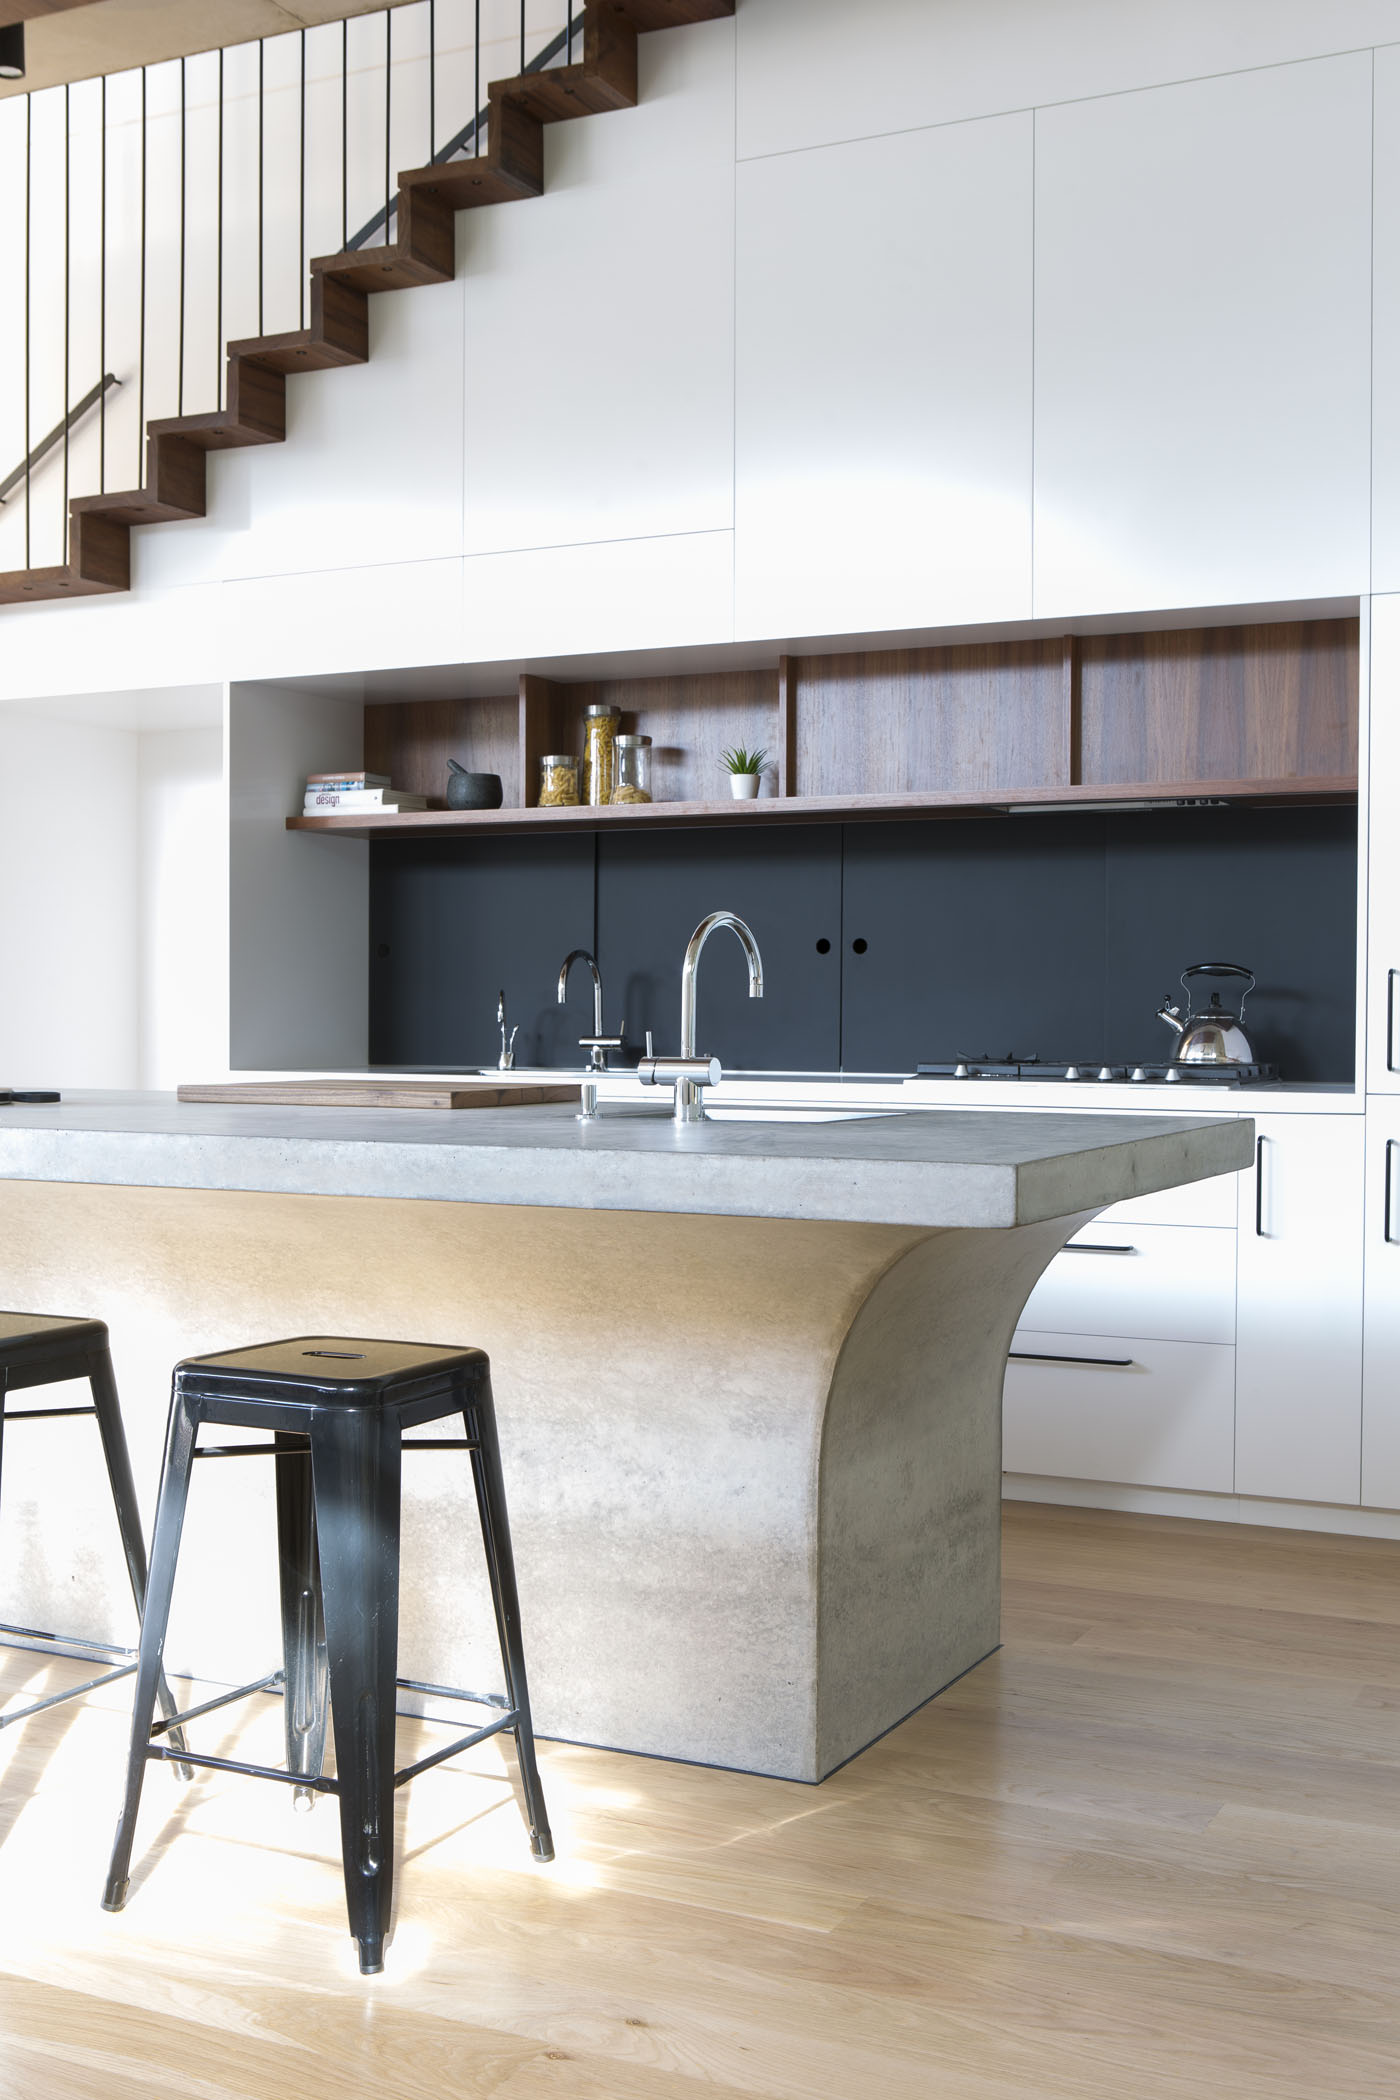 Sheppard Wilson House by Sydney award winning residential architecture office Sam Crawford Architects. Bespoke kitchen featuring curvilinear concrete island and timber joinery